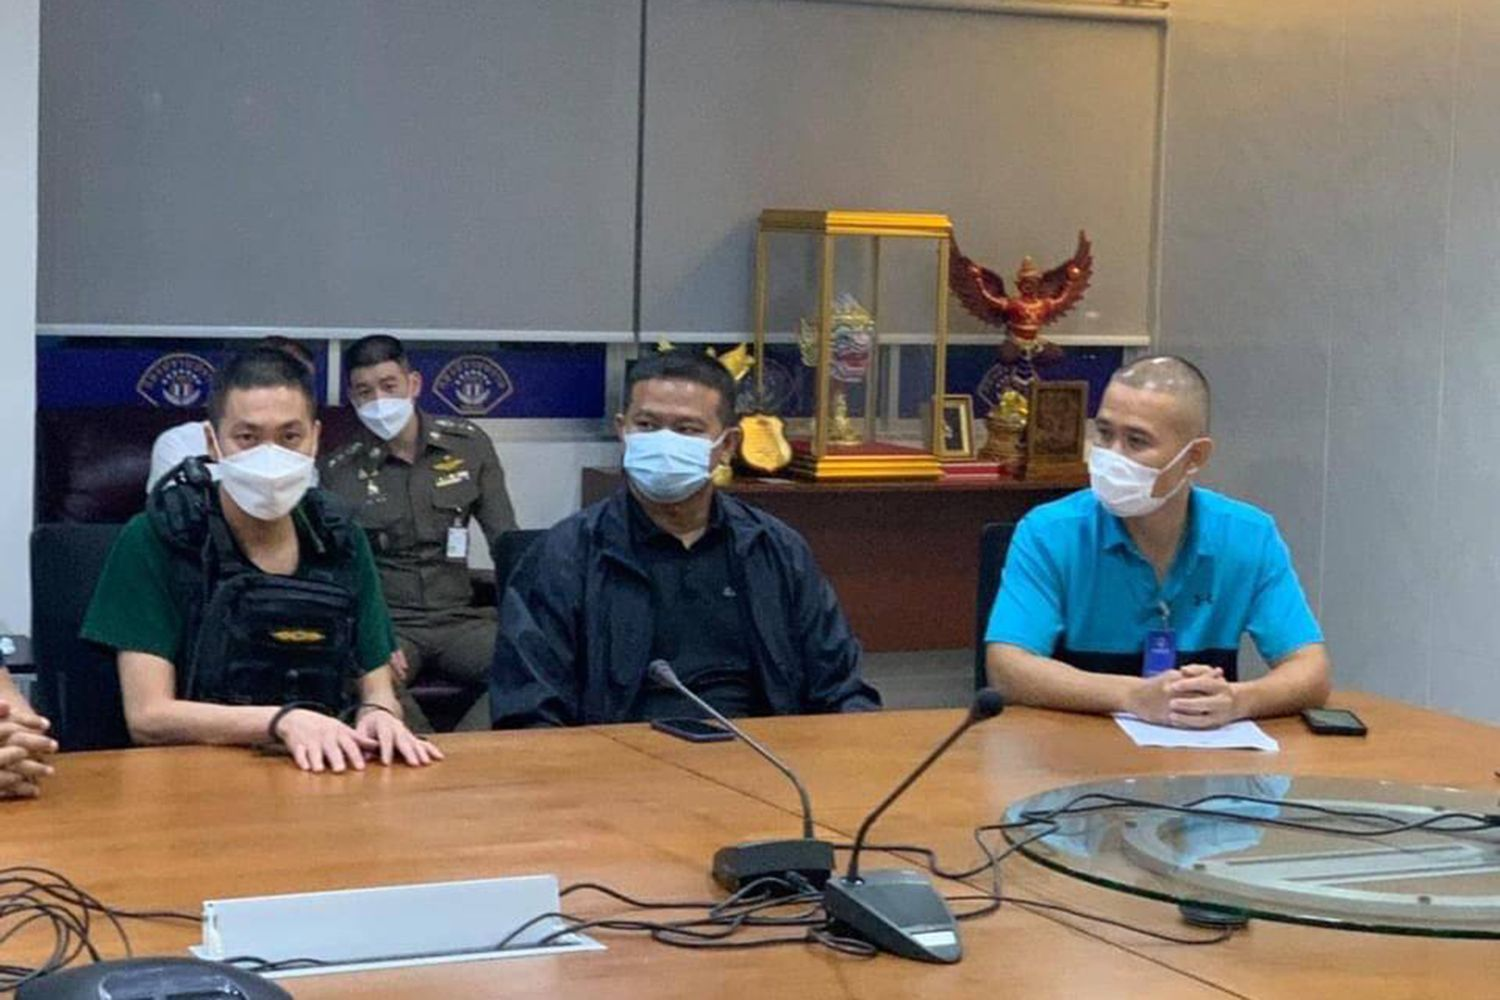 Pol Col Thitisant Utthanaphon (left), former chief of the Muang Nakhon Sawan police station, is questioned by senior police at the Crime Suppression Division in Bangkok on Thursday. (Crime Suppression Police photo)